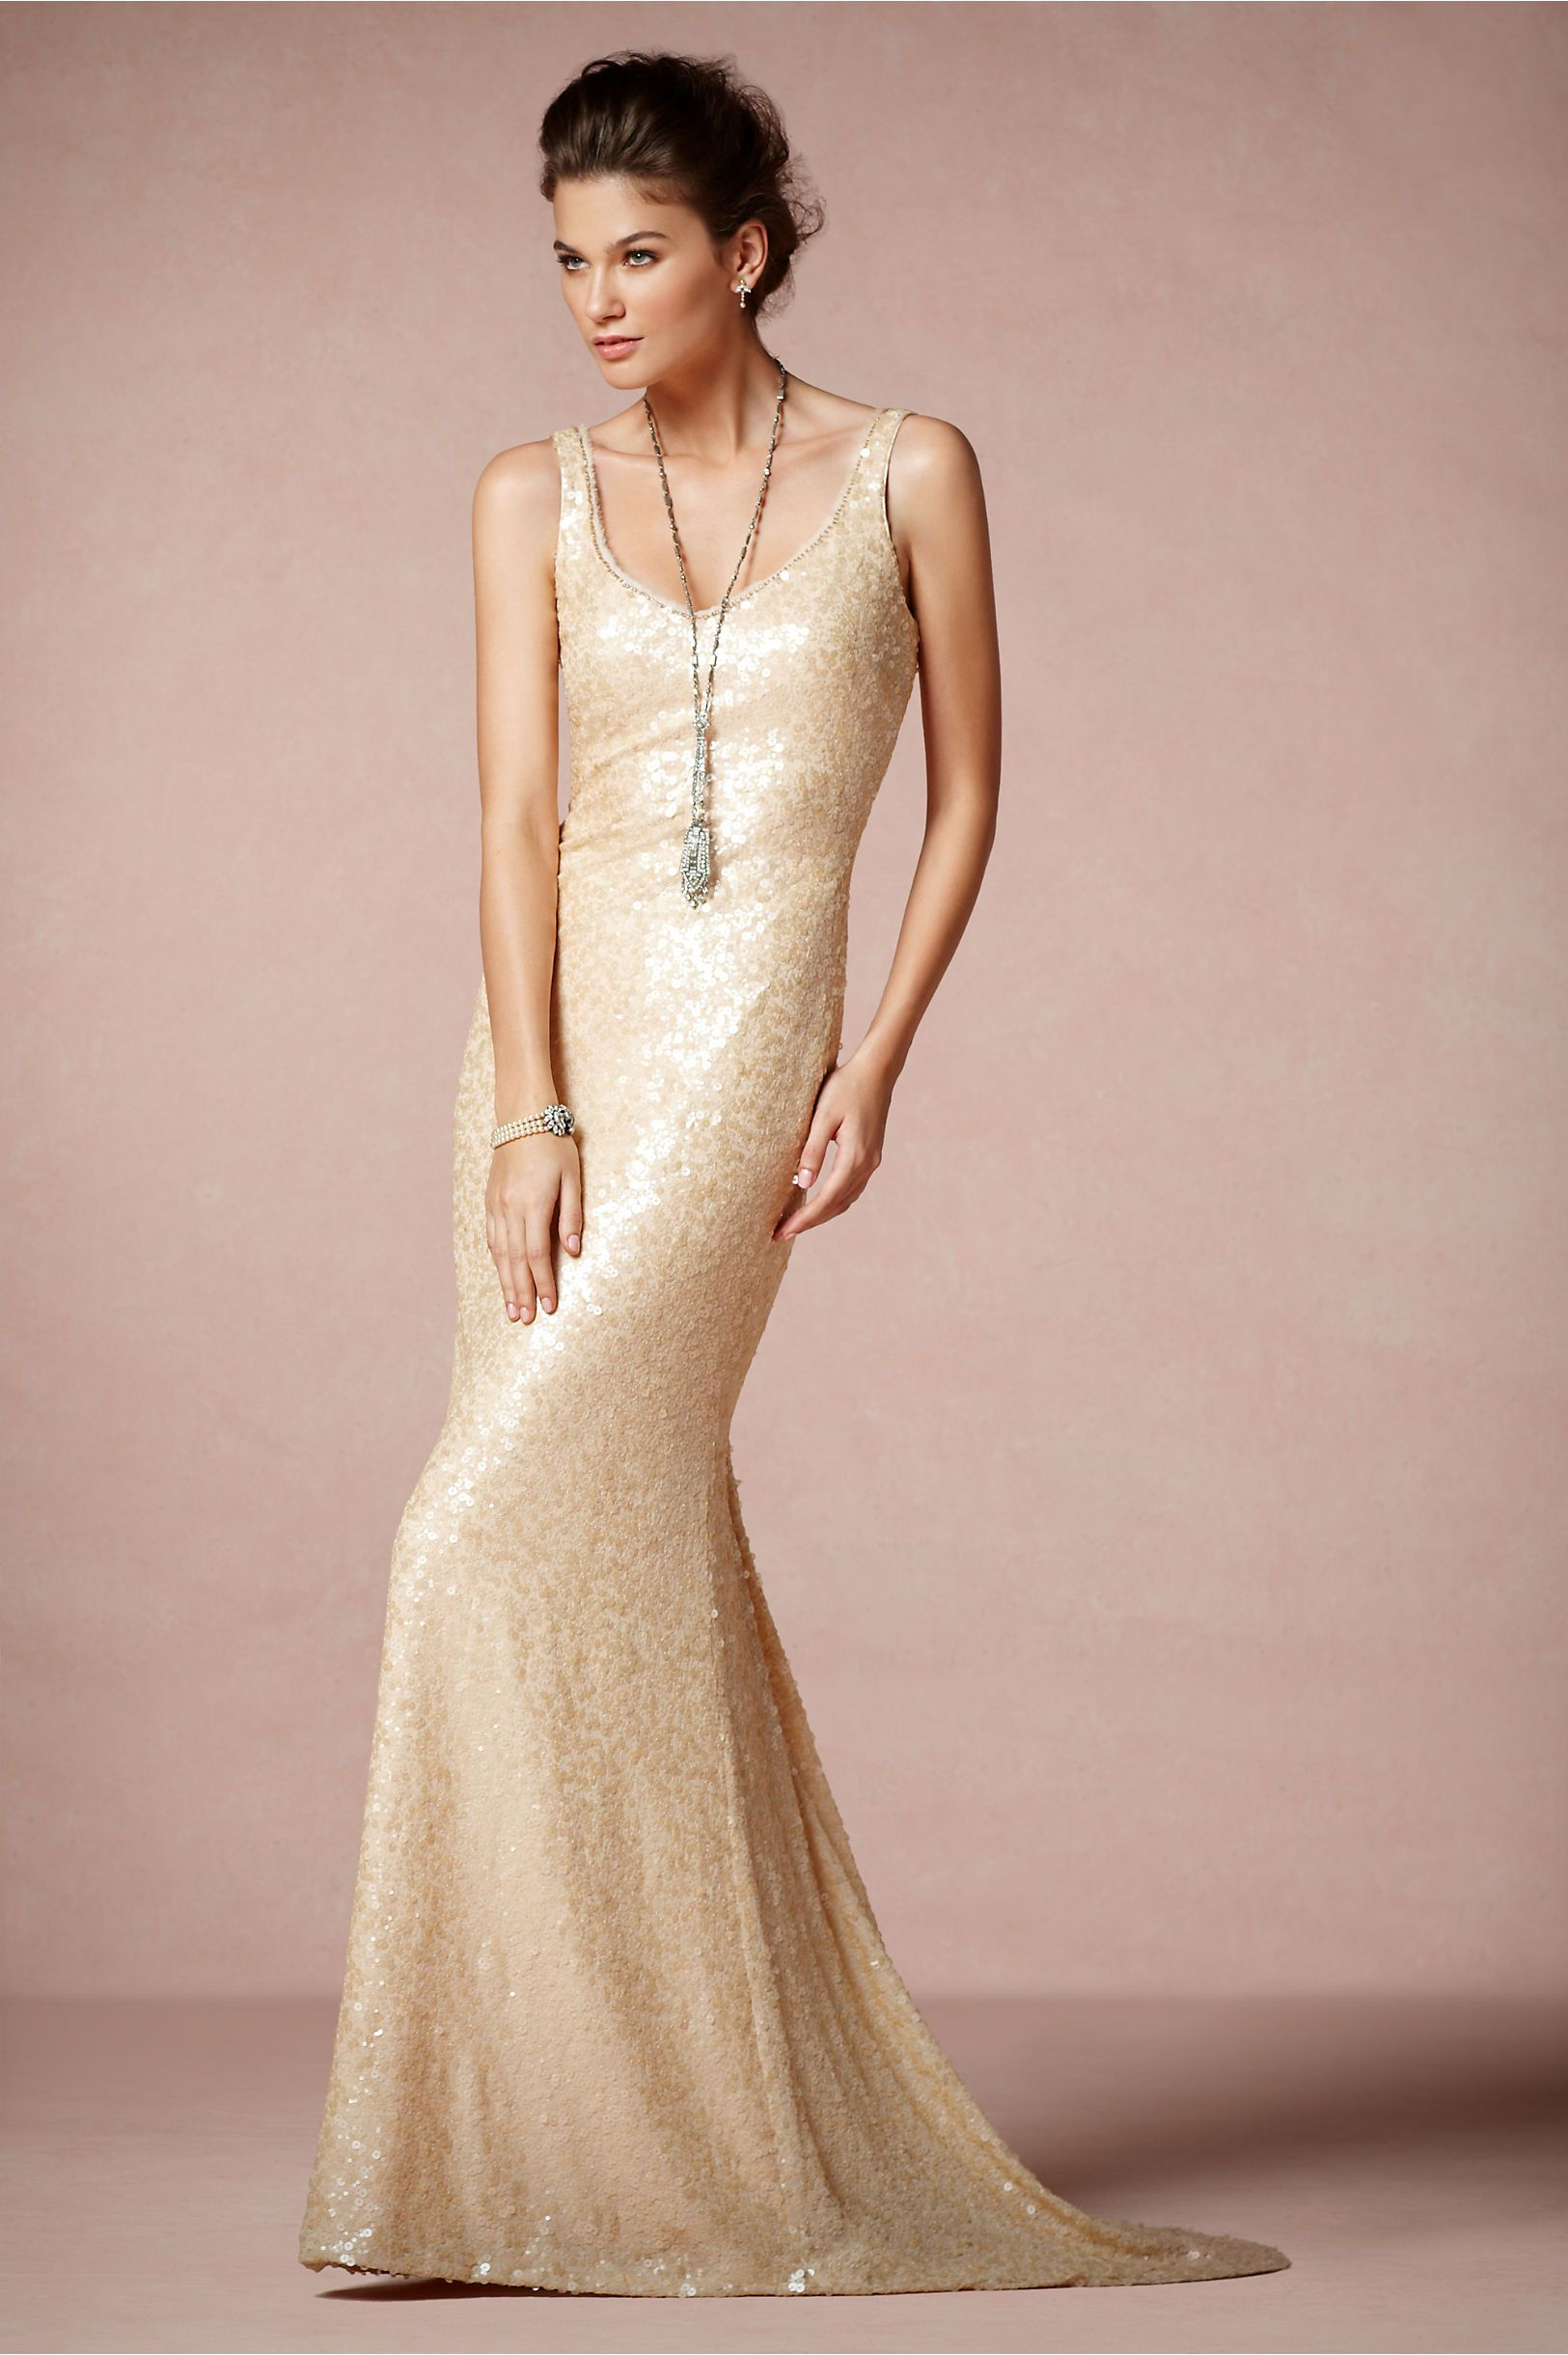 Cyprium Gown in The Bride Wedding Dresses at BHLDN | Wedding Apparel ...